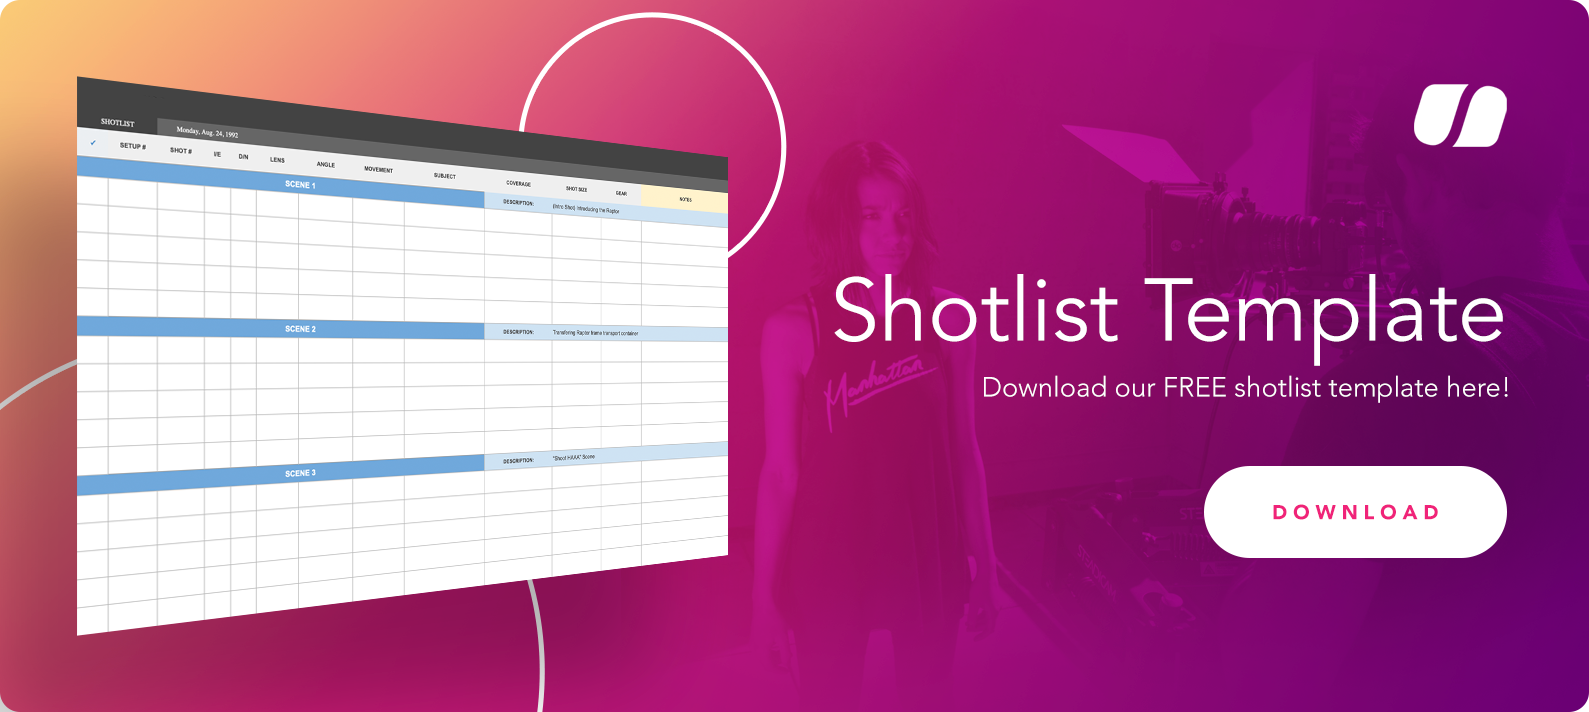 Shotlist Template CTA